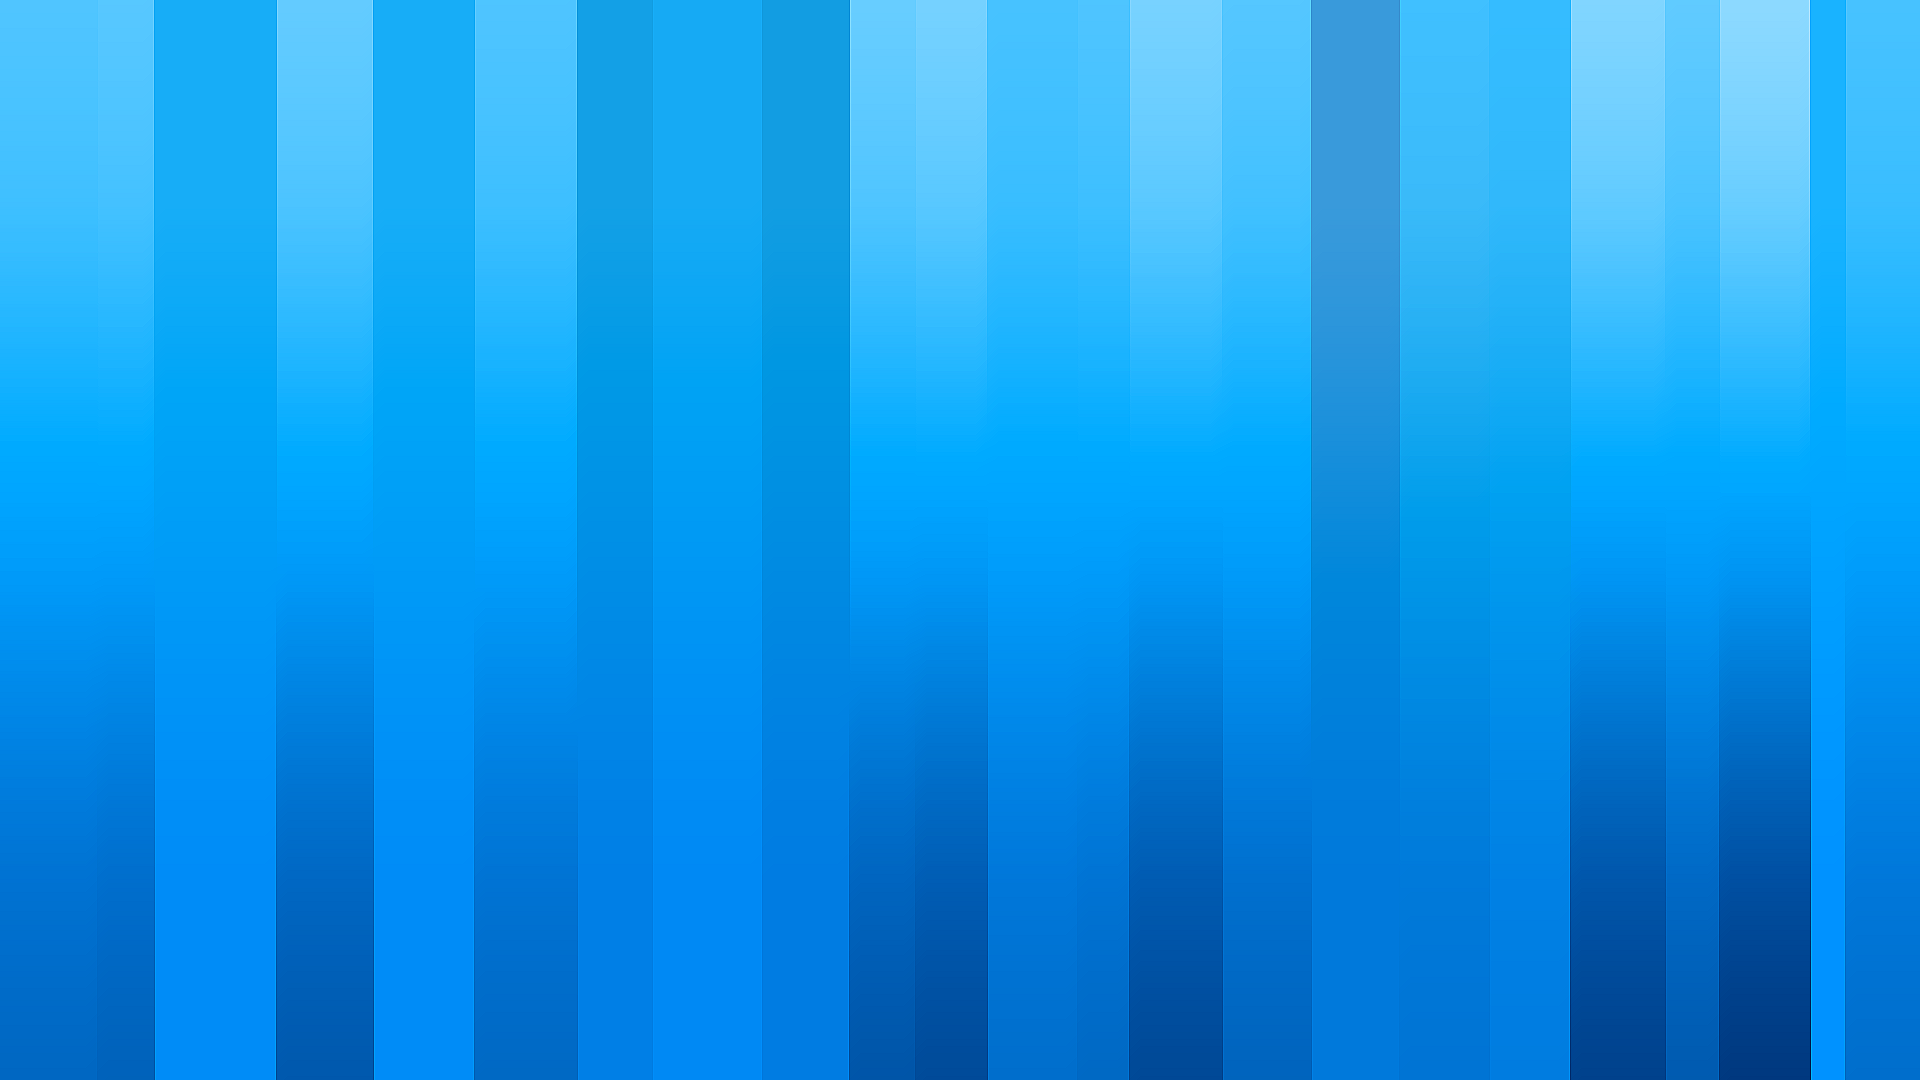 Blue Full HD Quality Wallpapers